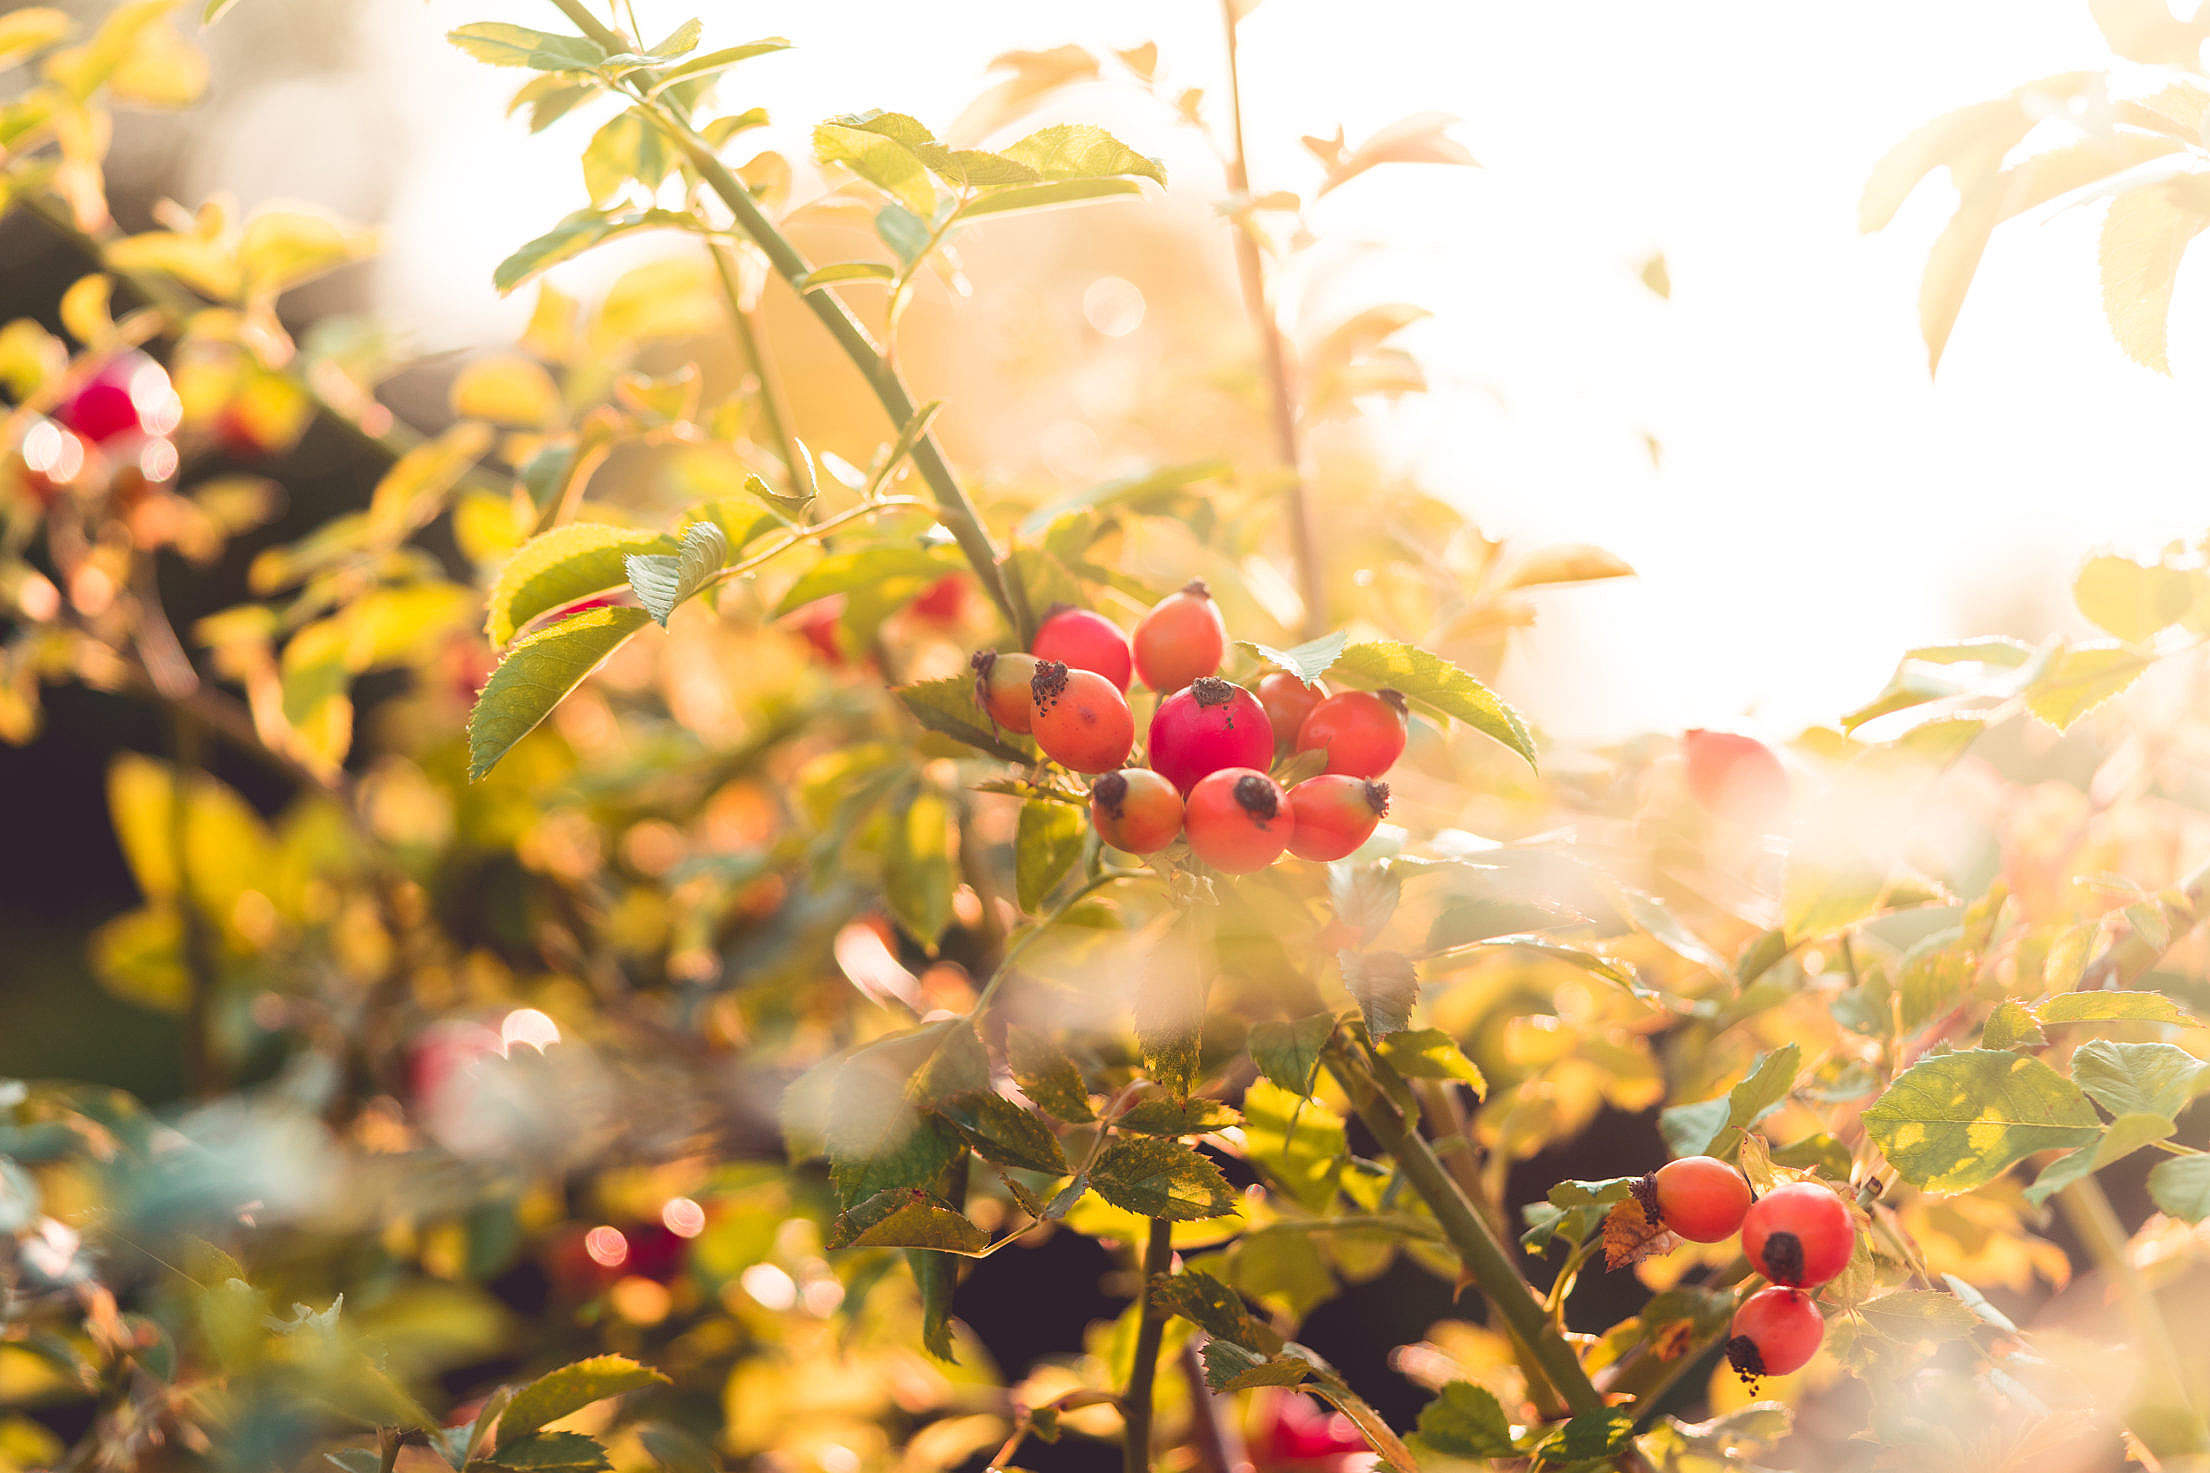 Rose Bush with Berries Rosehips Free Stock Photo